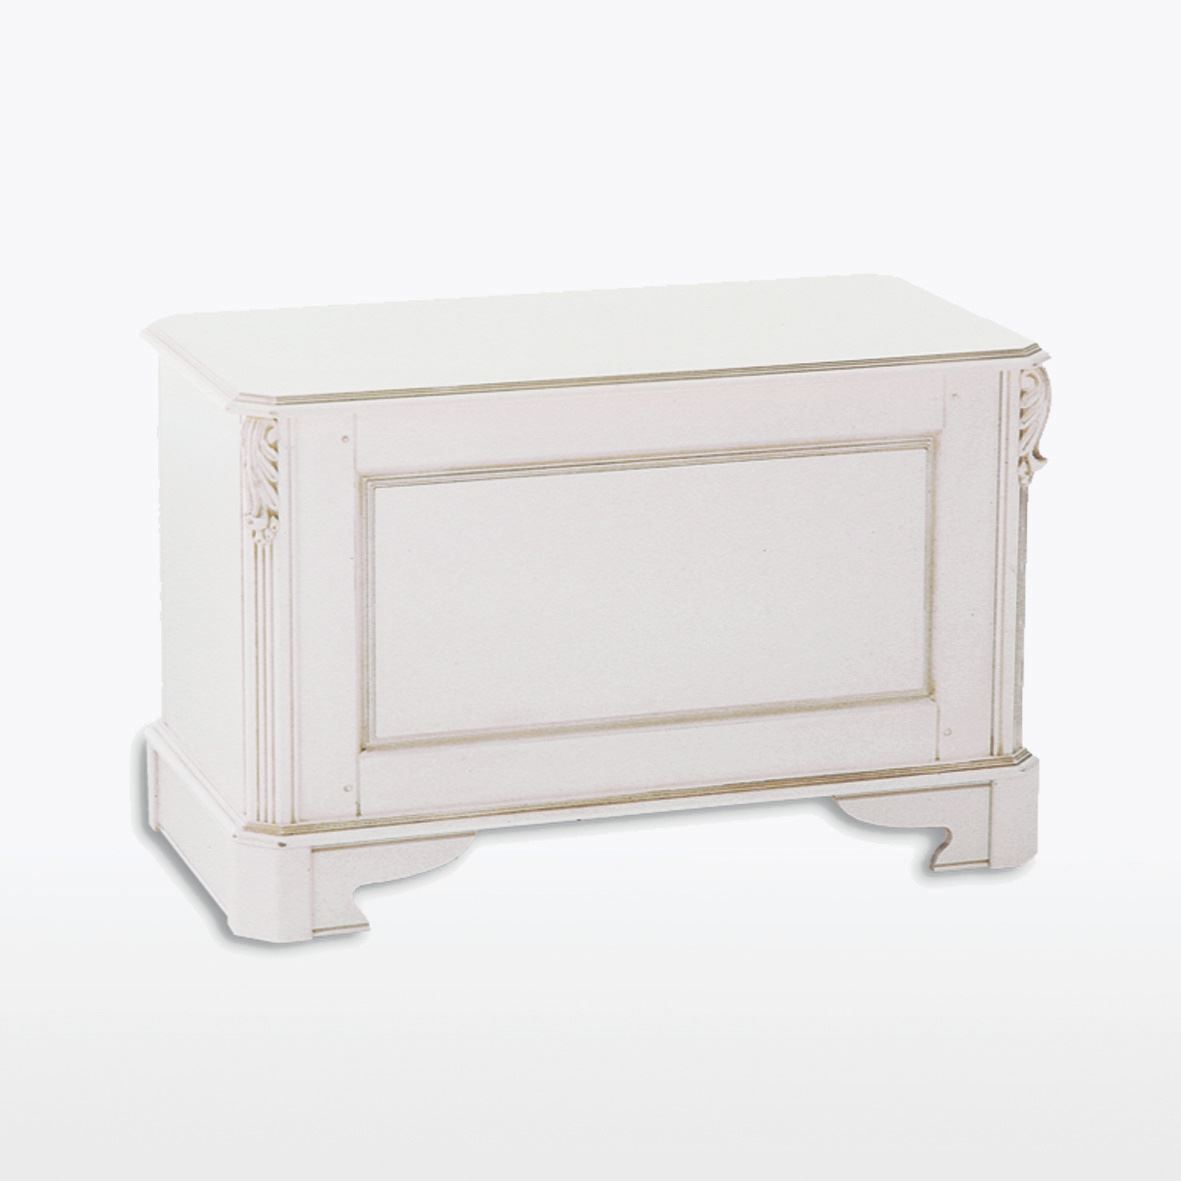 Amore' - Compact Blanket Chest - ABJ230